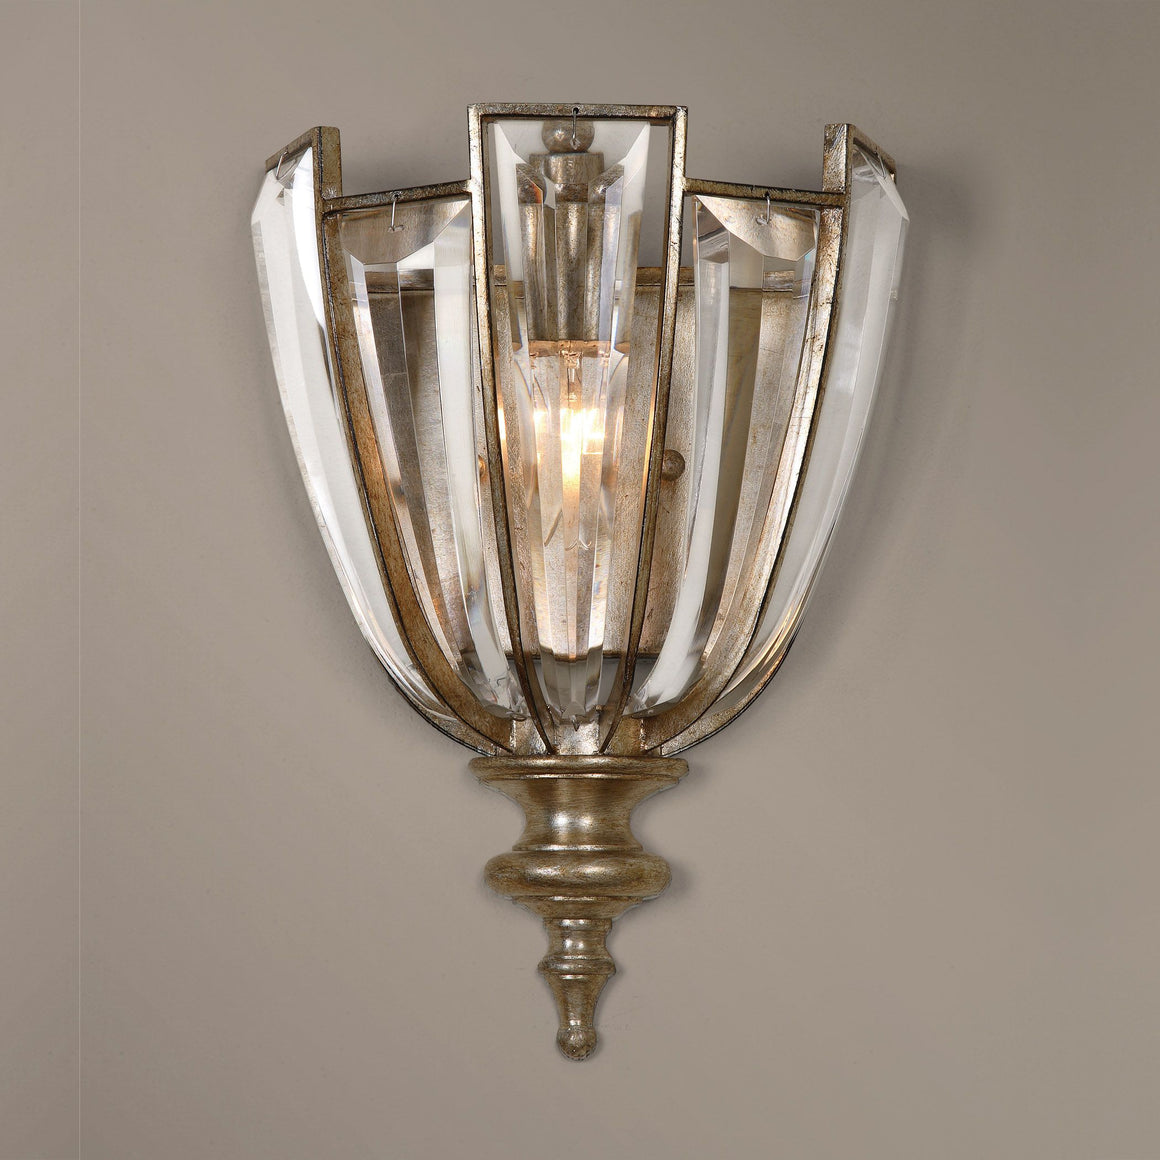 Vicentina 1 Light Crystal Wall Sconce - taylor ray decor